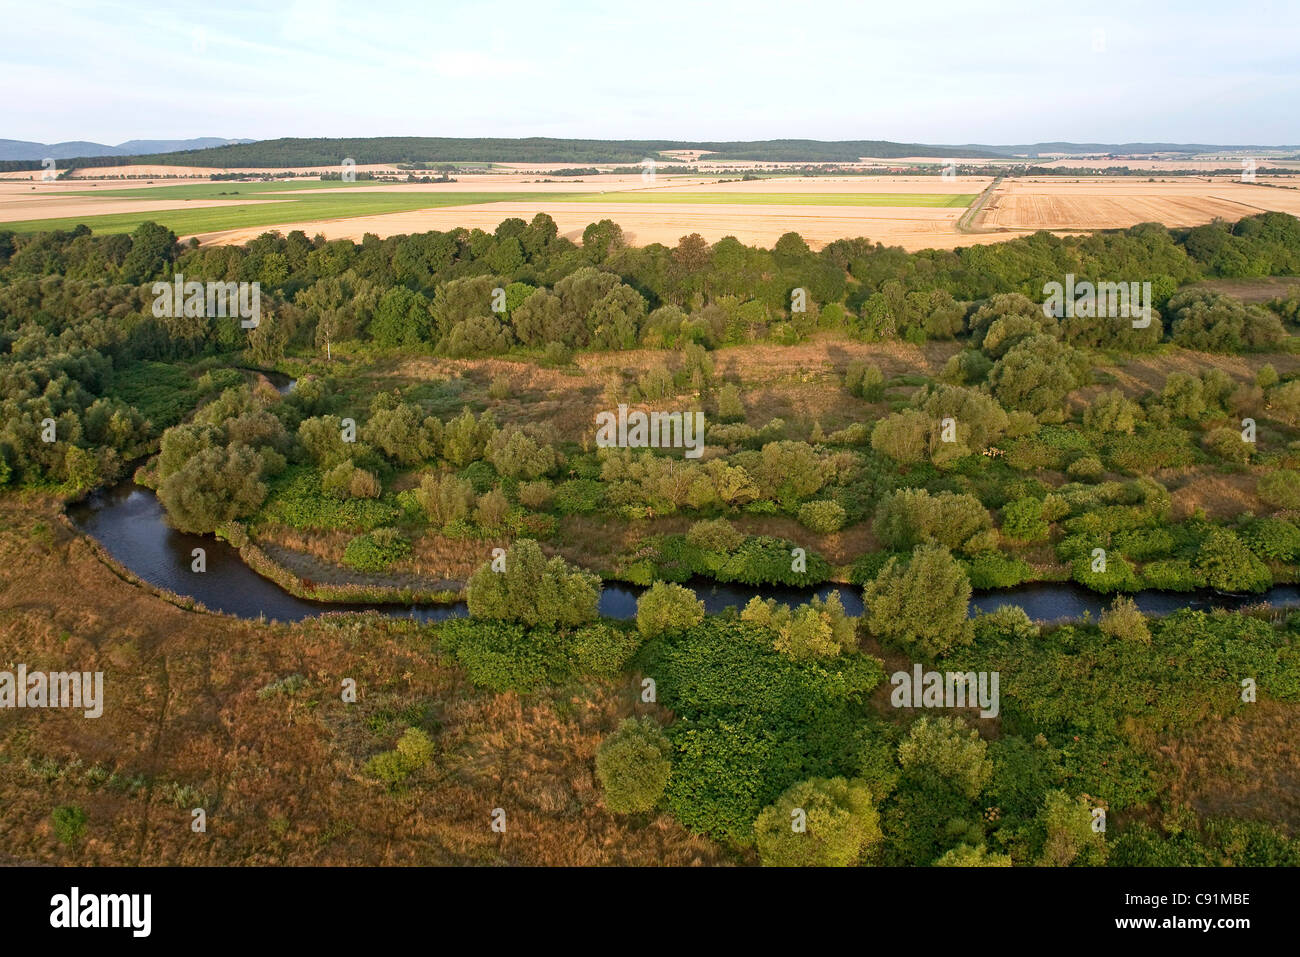 Aerial view of meadows of the Innerste river, nature reserve, Lower Saxony, Germany - Stock Image